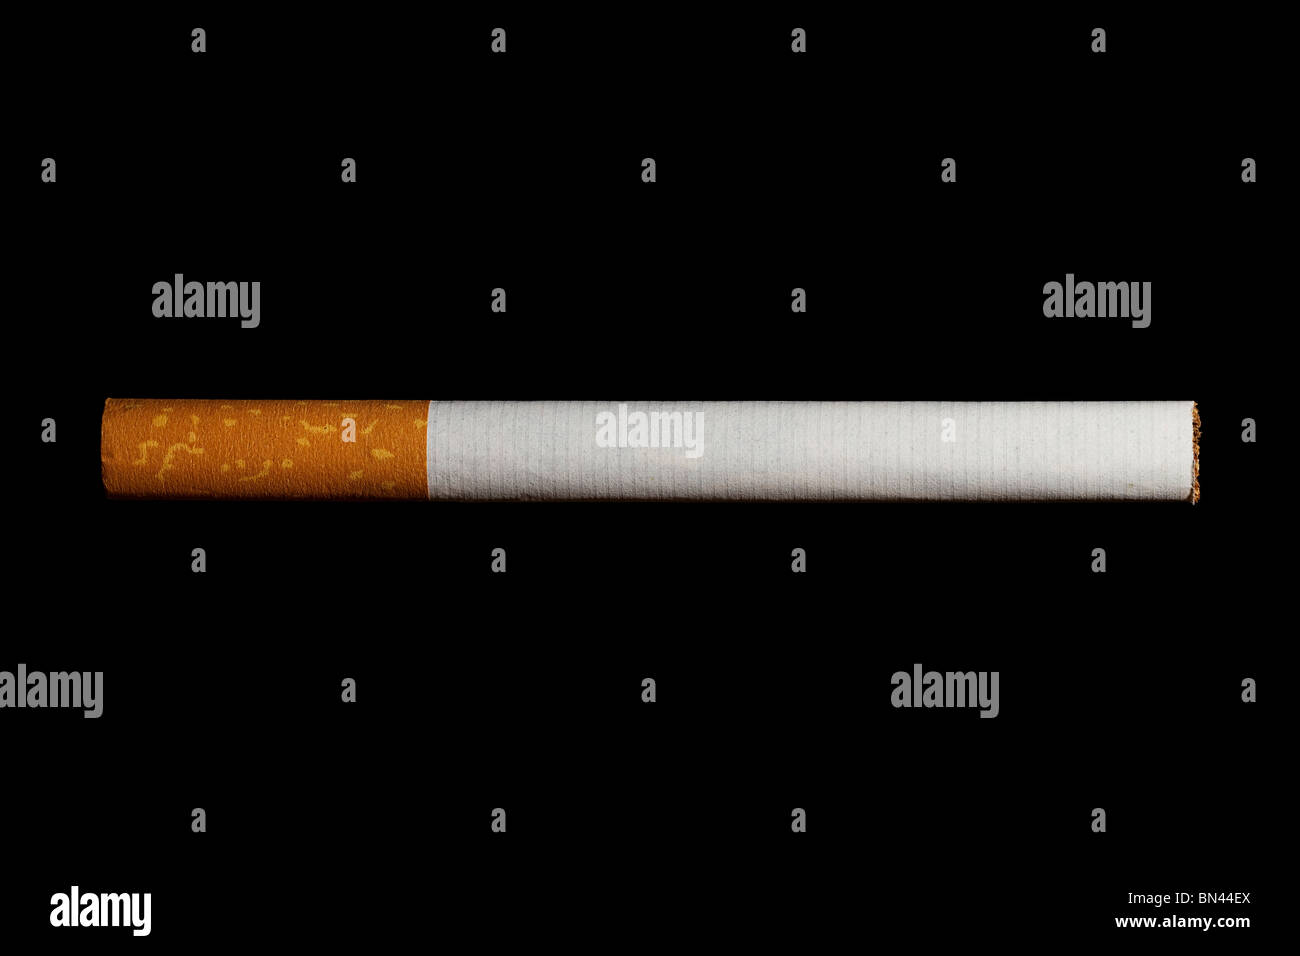 one cigarette with filter isolated on black background - Stock Image